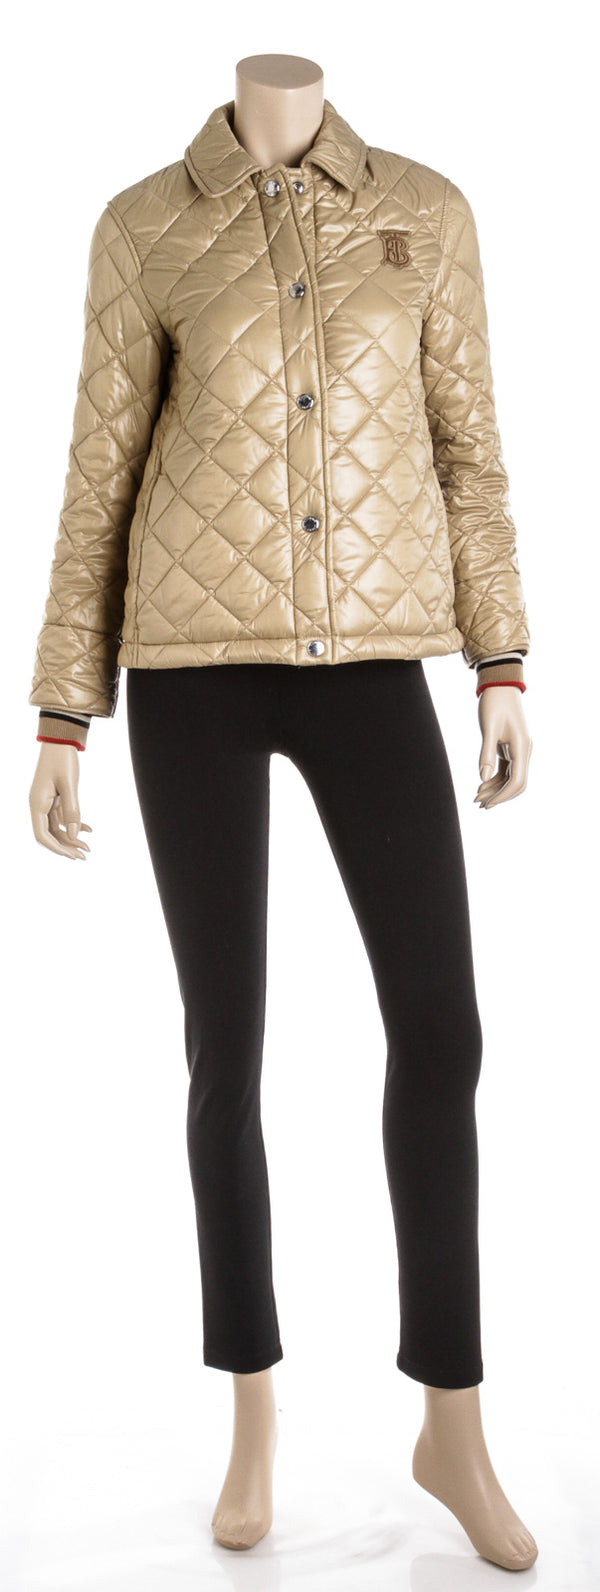 Burberry Honey Heathfield Frinton Knit Cuff Quilted Jacket (Size XS)